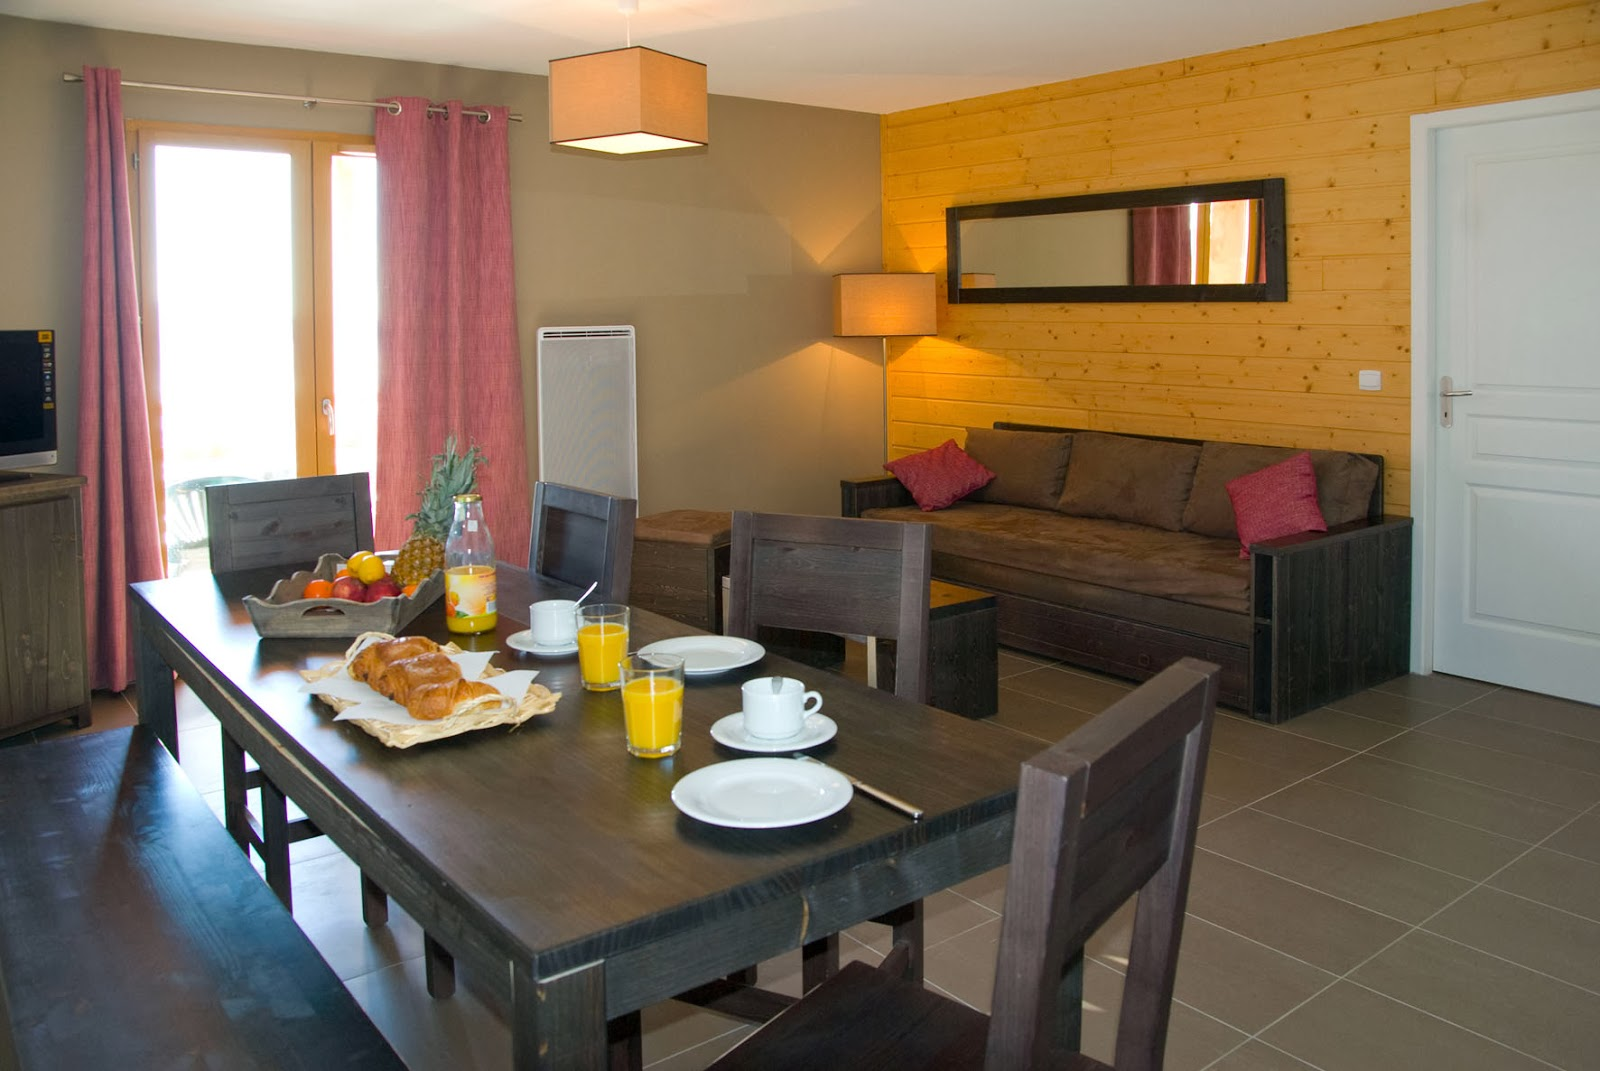 Modern living in Le Pic de l'Ours, self catered ski accommodationm, Font Romeu